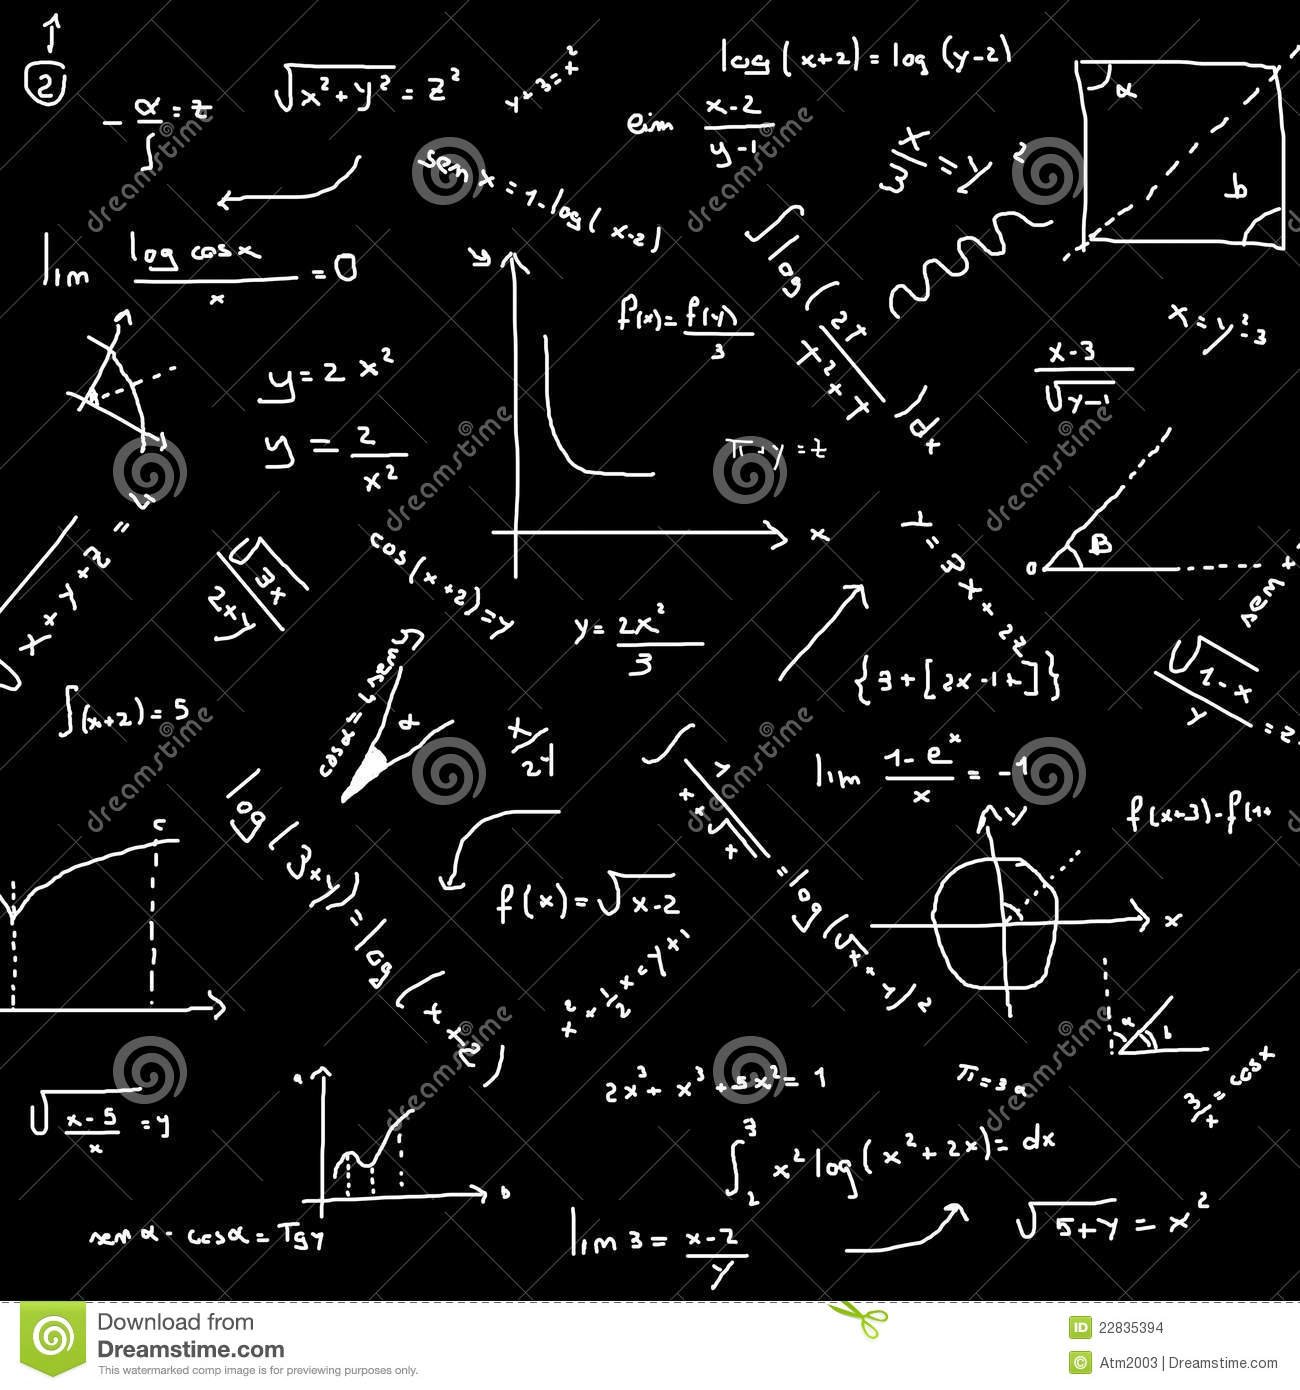 Fond De Maths Images stock - Image: 22835394